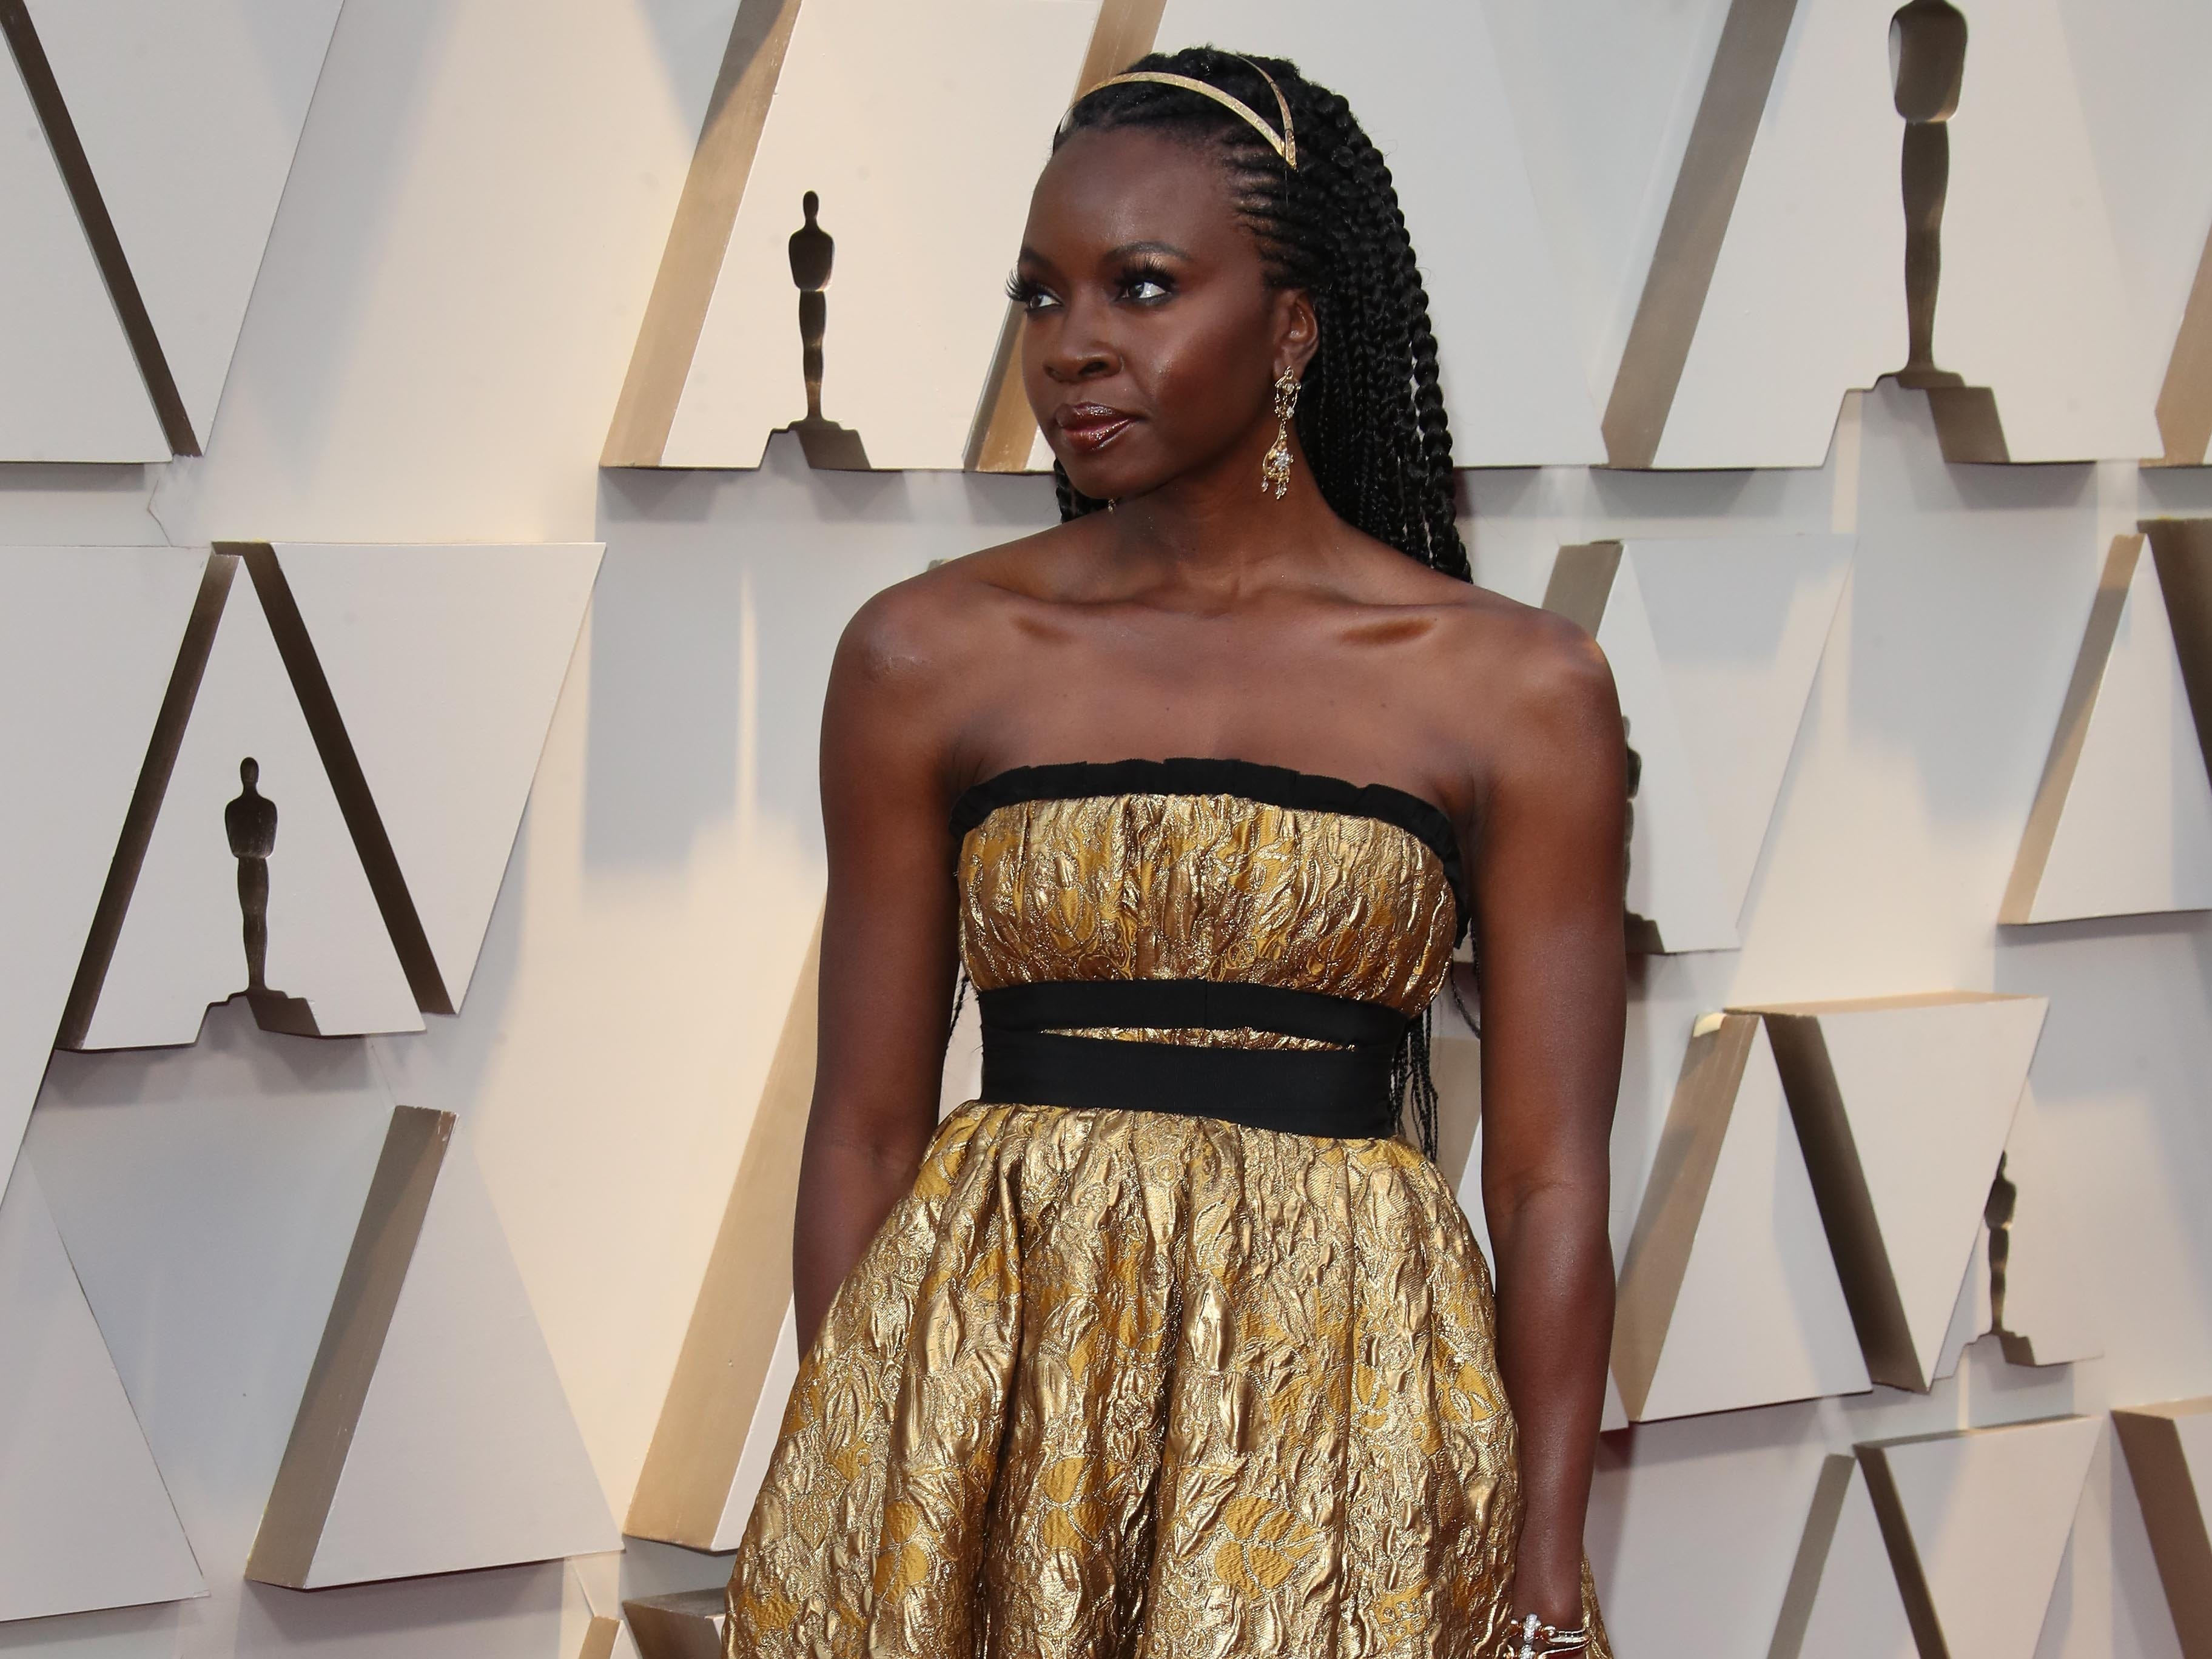 February 24, 2019; Los Angeles, CA, USA; Danai Gurira arrives at the 91st Academy Awards at the Dolby Theatre. Mandatory Credit: Dan MacMedan-USA TODAY NETWORK